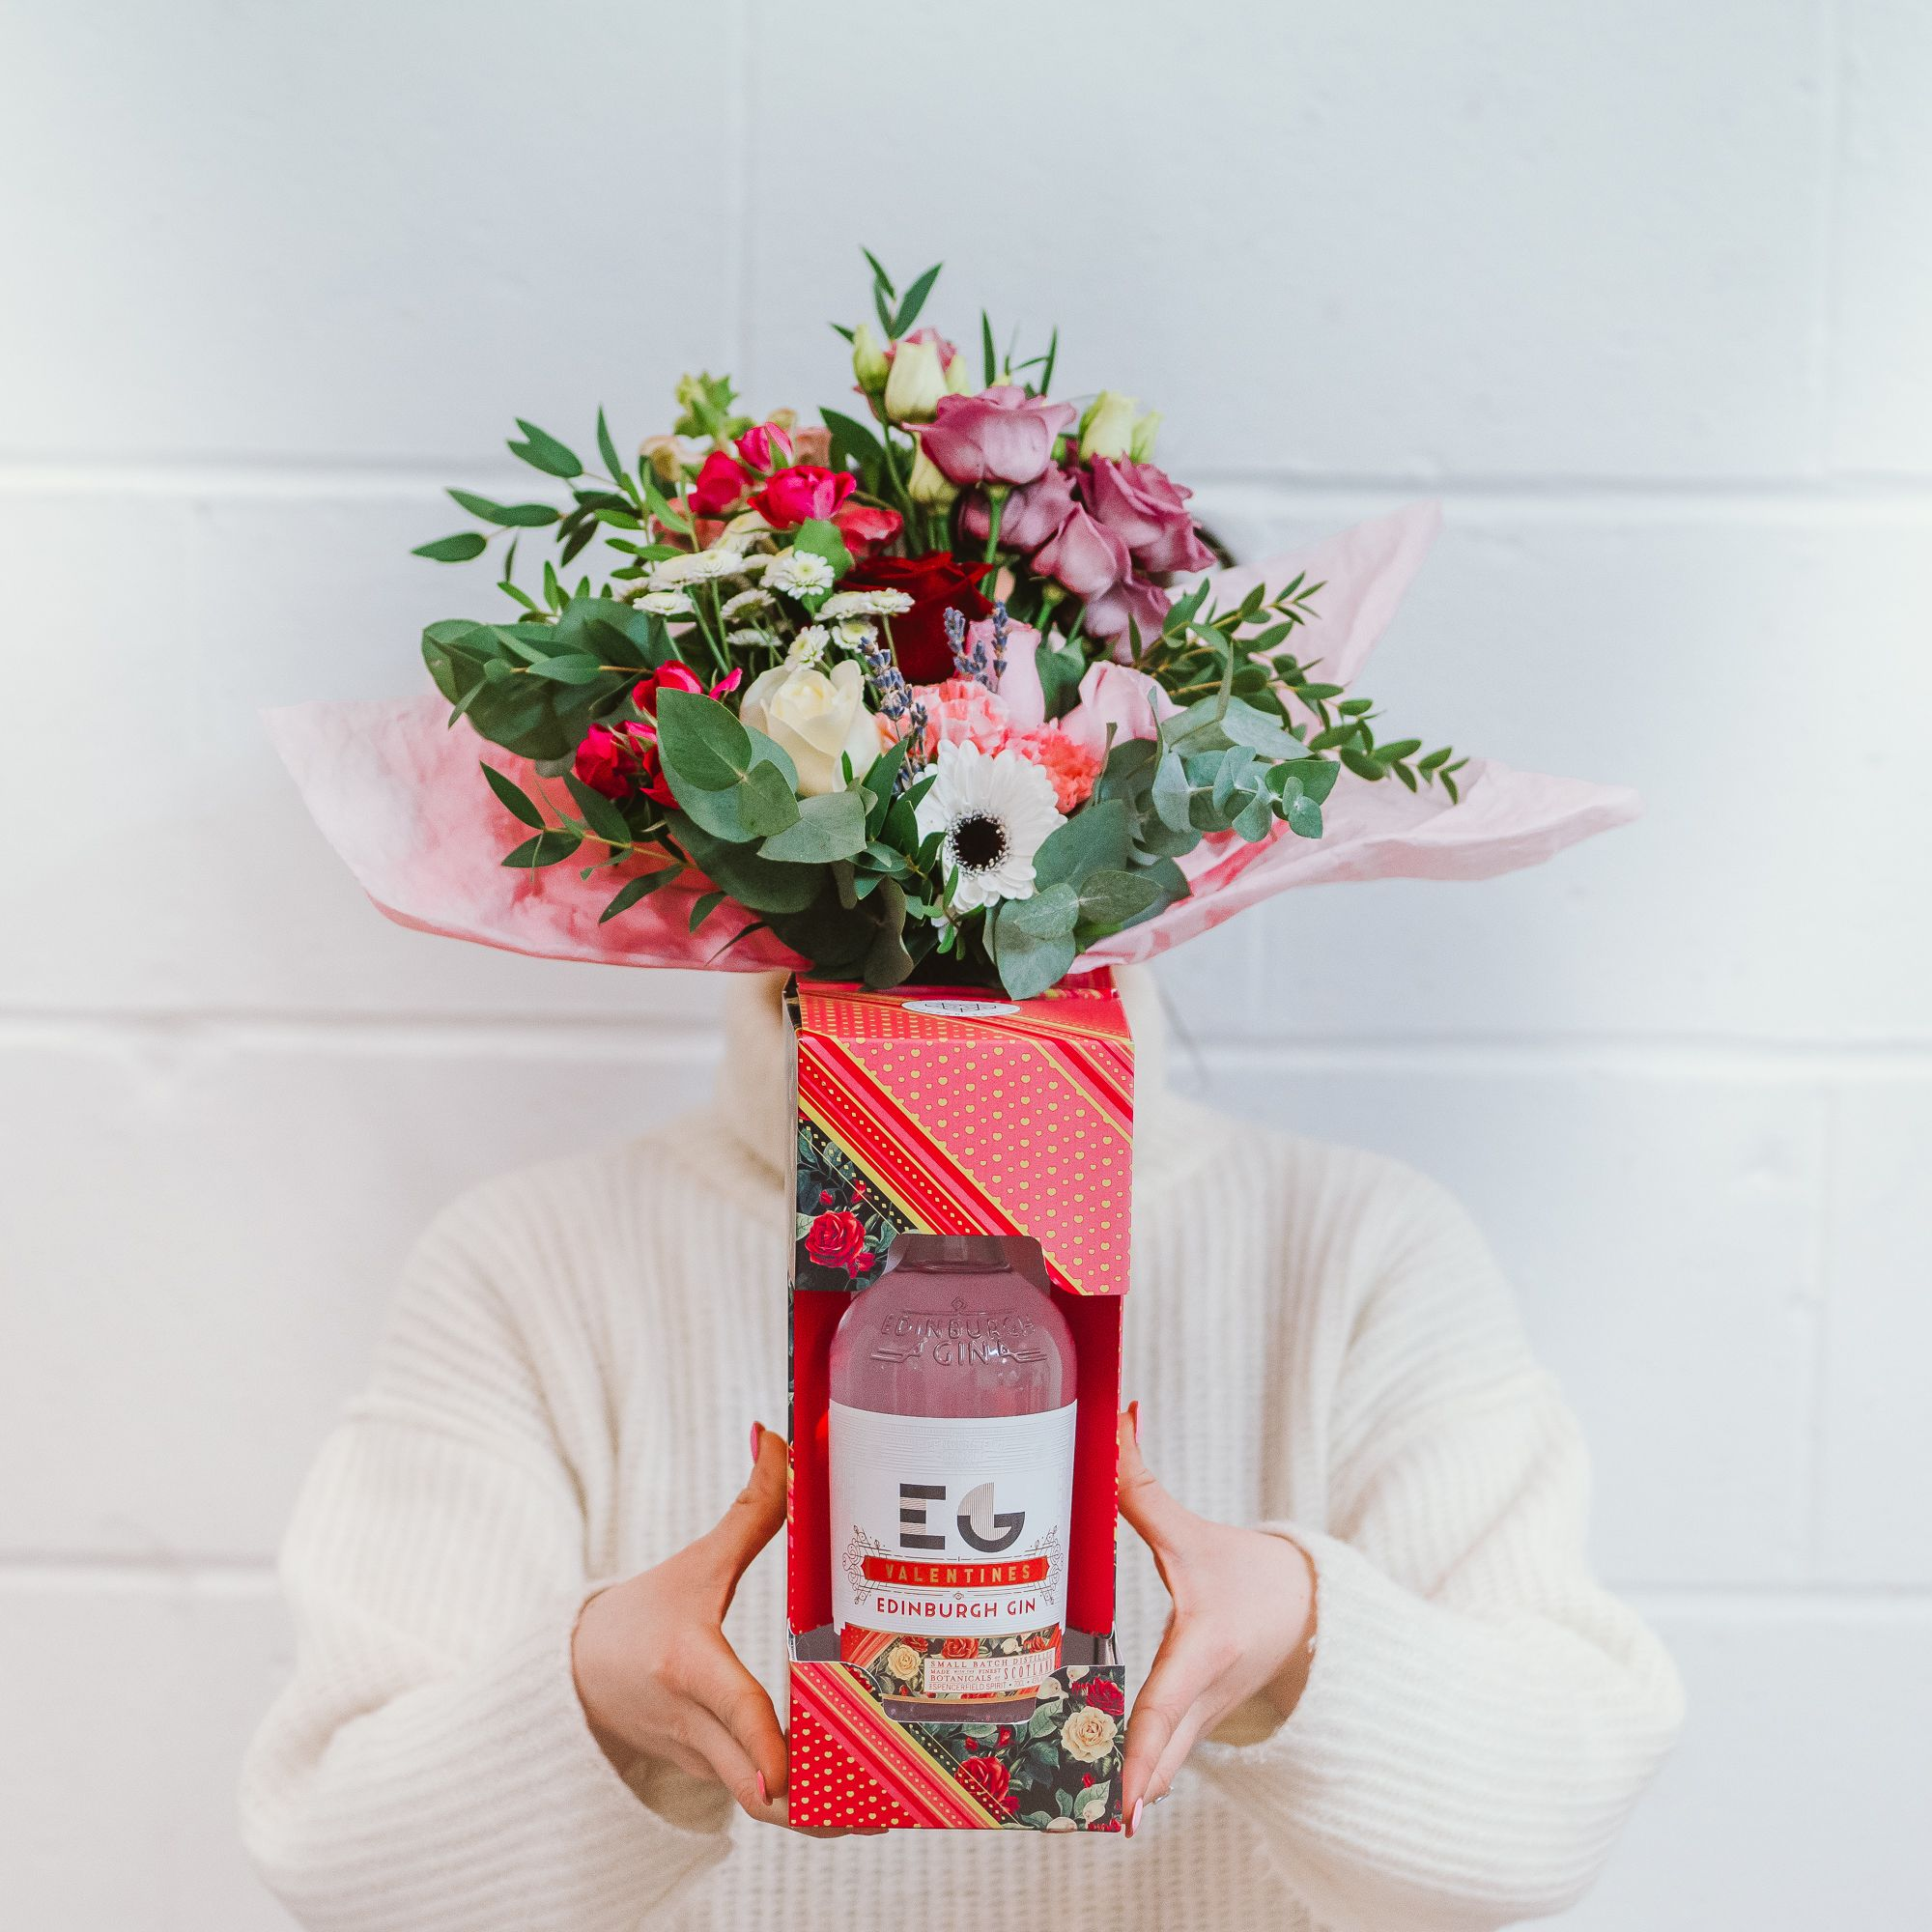 Gin Bouquets Are The Perfect Gift For Valentine's Day